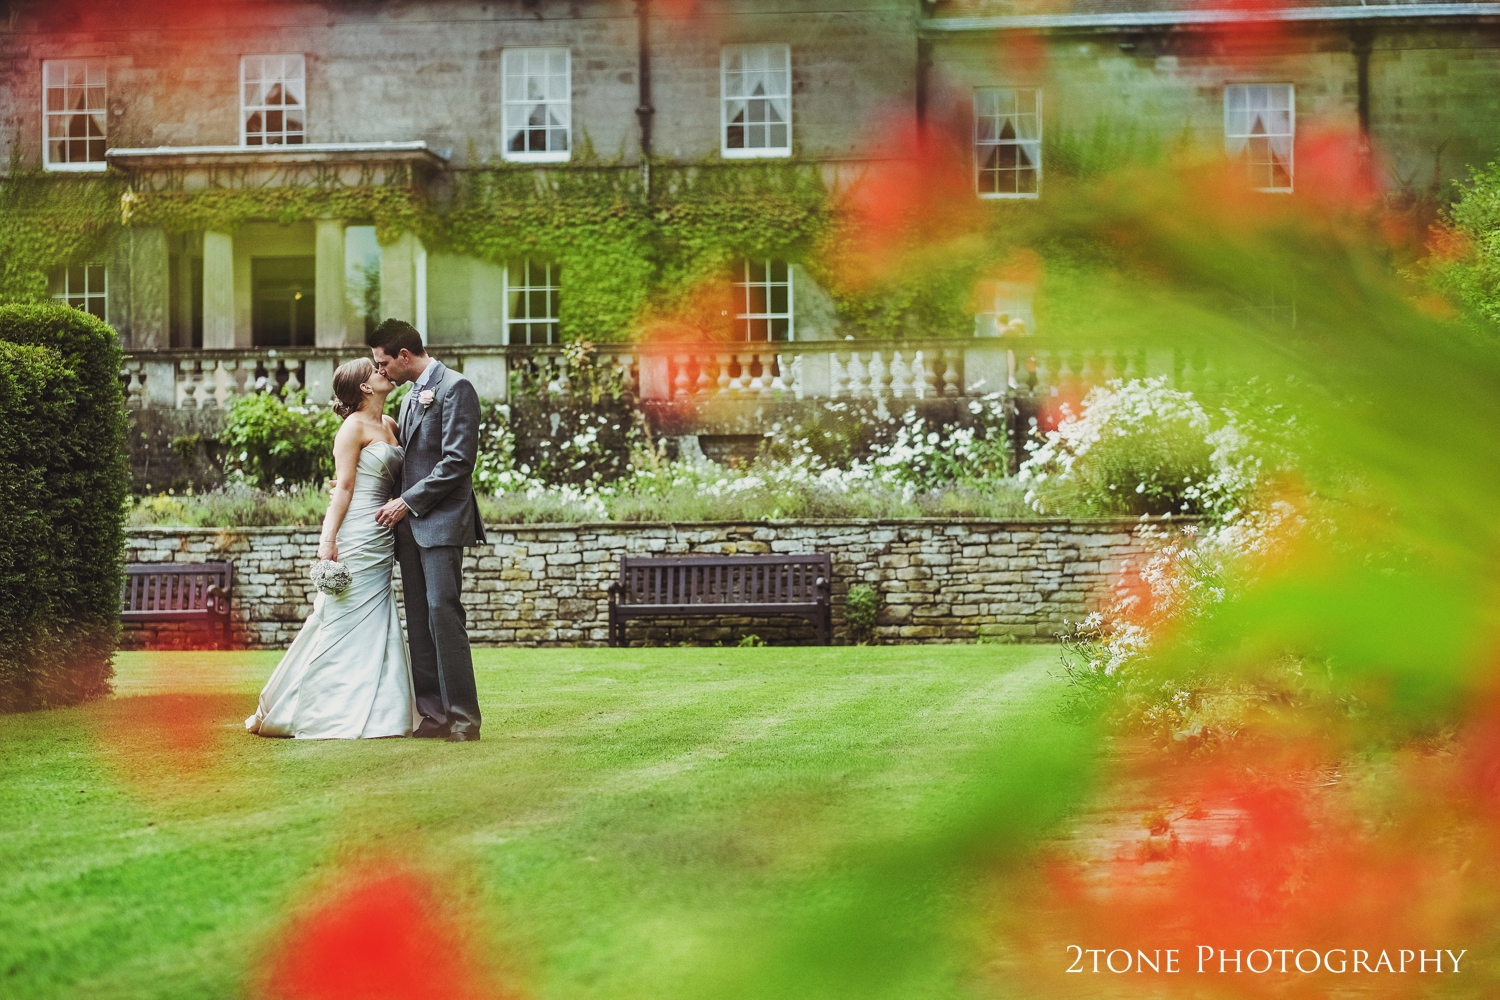 Laura and Simon looking gorgeous in the stunning mature gardens of Doxford Hall.